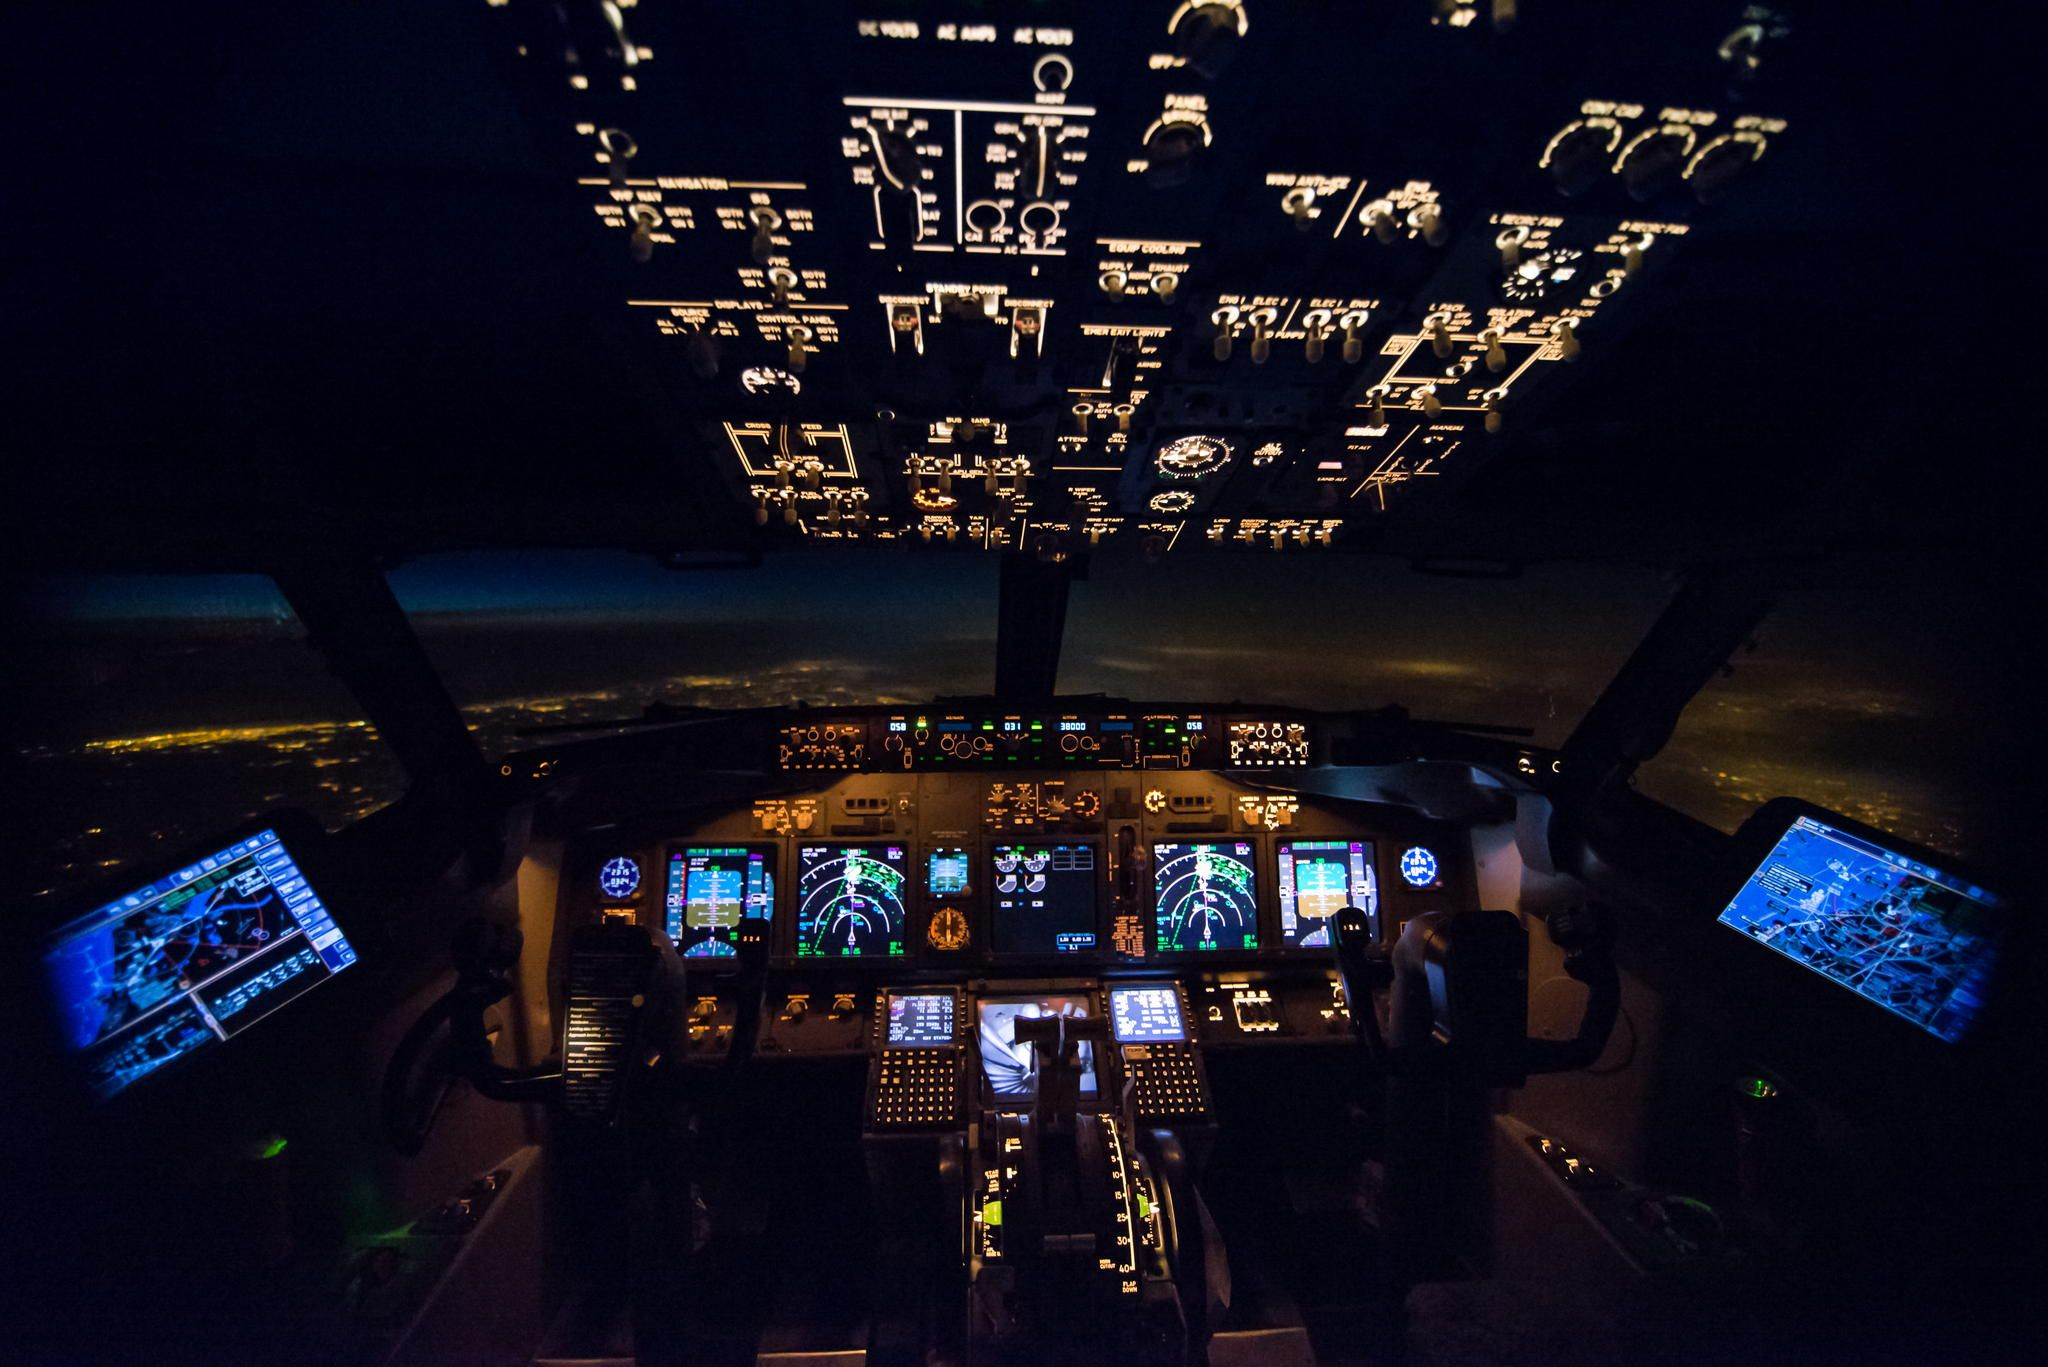 Image result for southwest 737 cockpit night